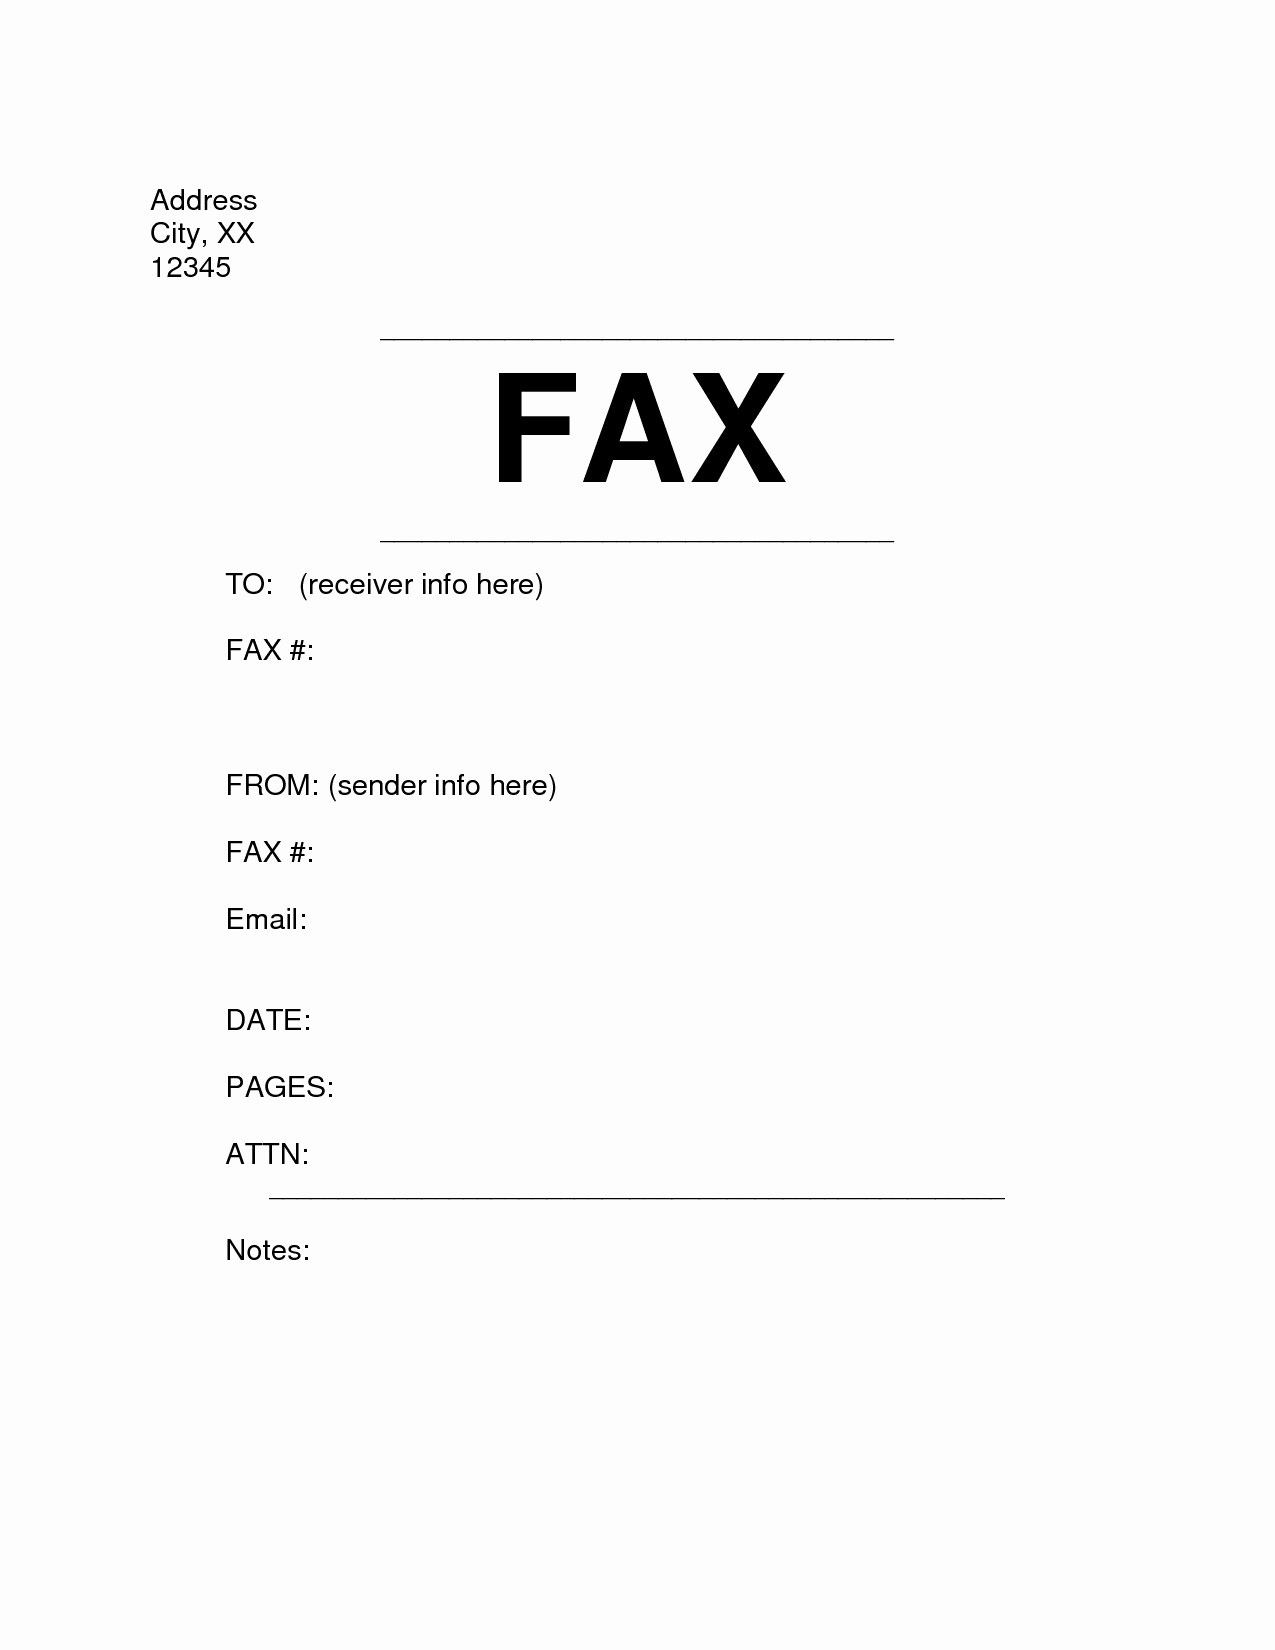 Cover Sheet for Fax Example Beautiful Microsoft Fice Fax Cover Sheet Template